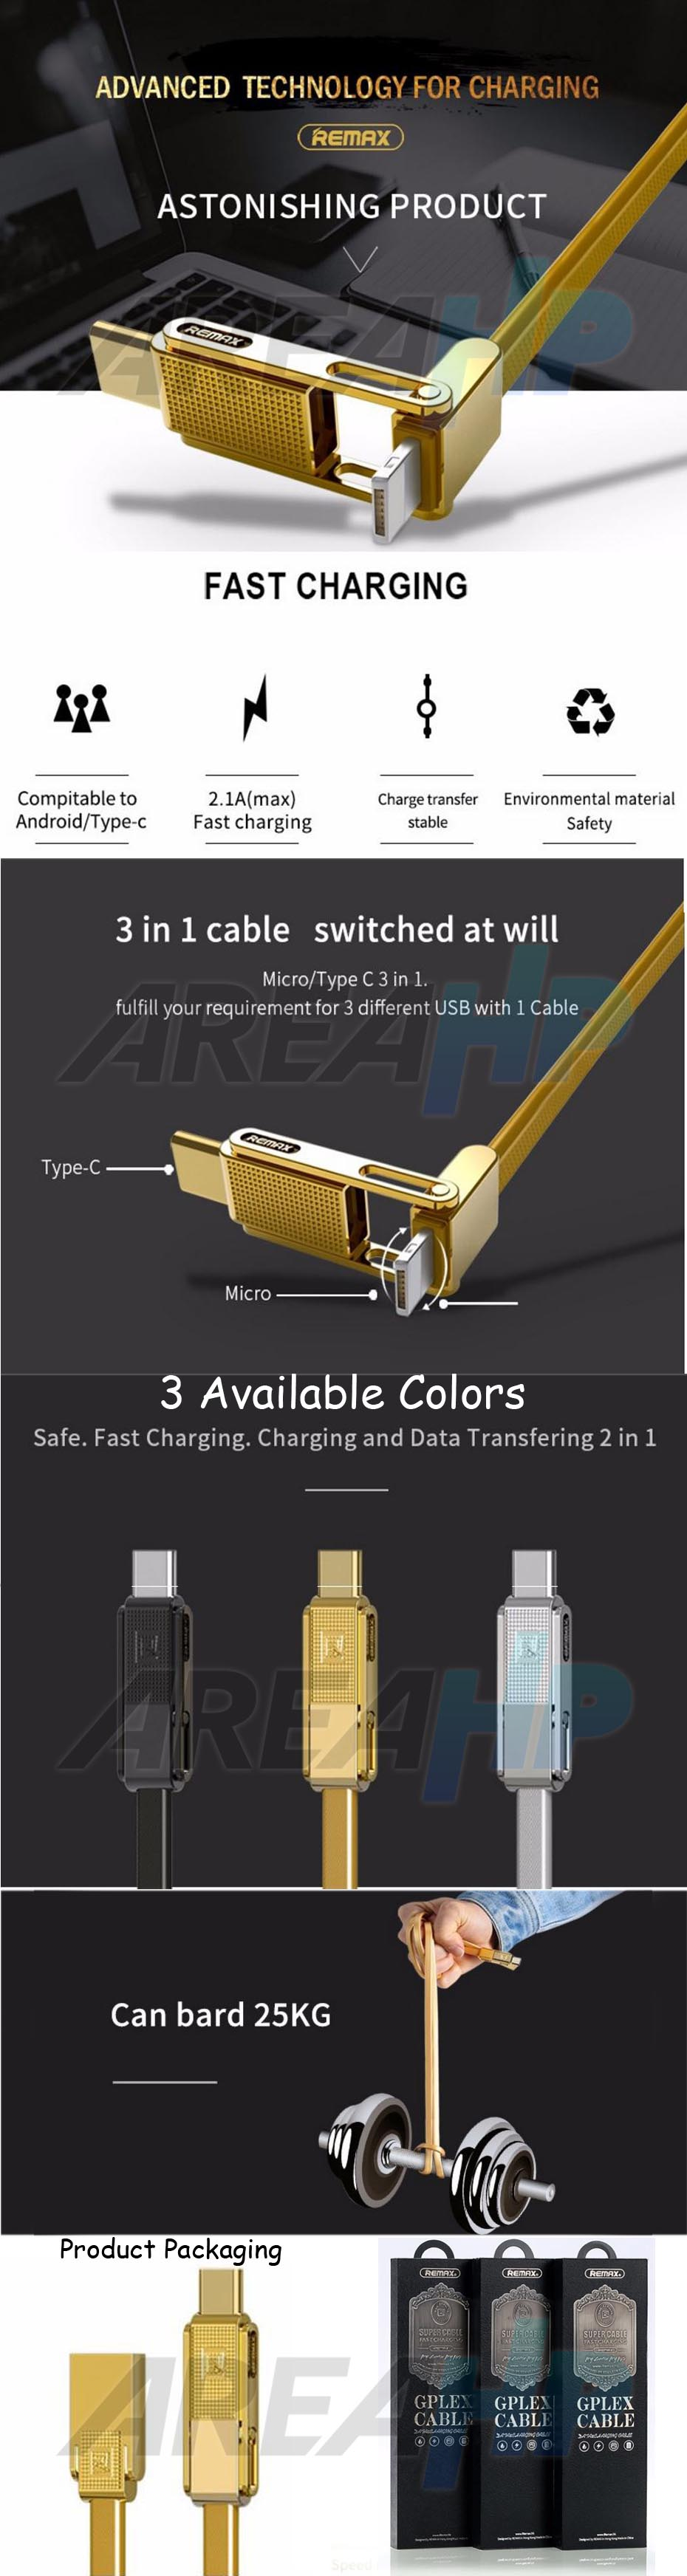 Areahp Remax Gplex 3in1 Apple Lightning Micro Type C Usb Cable Gold 1m Rc 070th